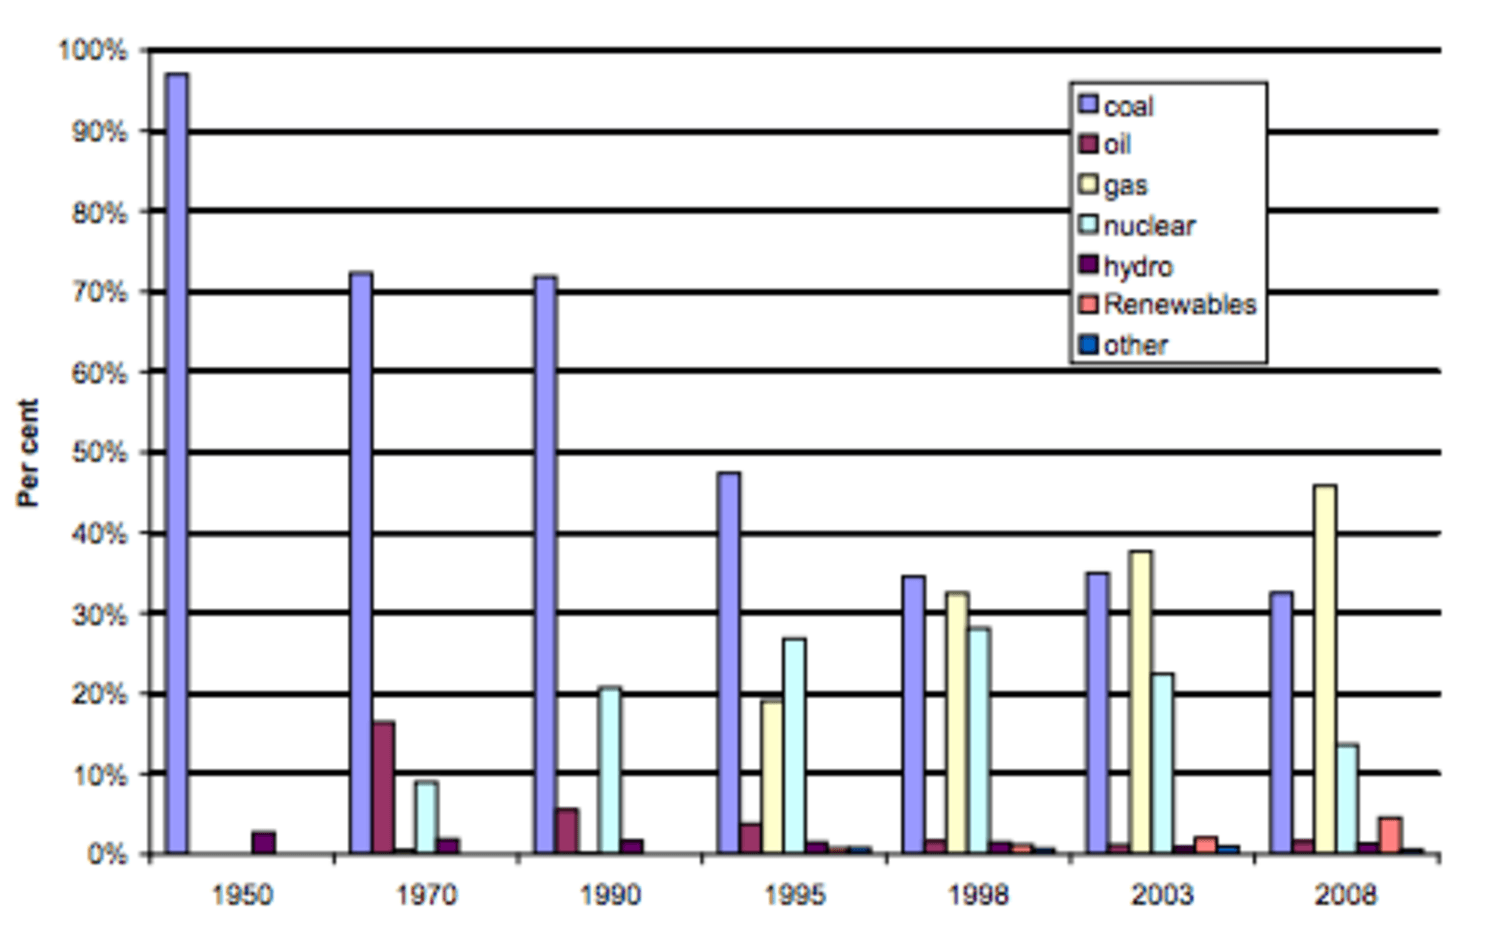 Electricity generation by fuel type.